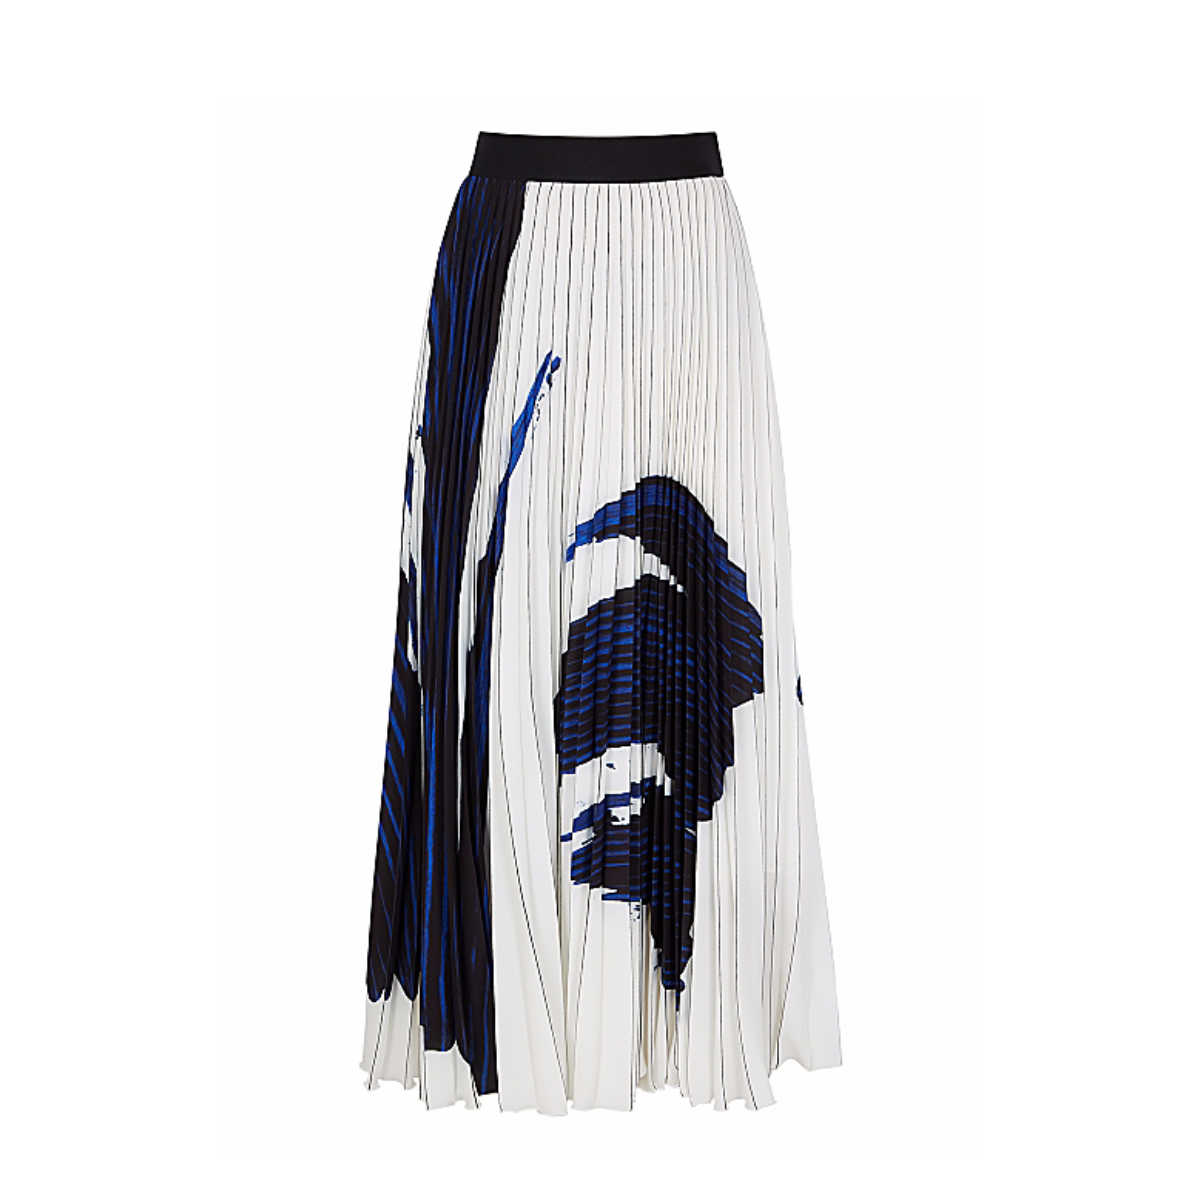 Hugo Boss 'Vesplisa' Pleated Skirt